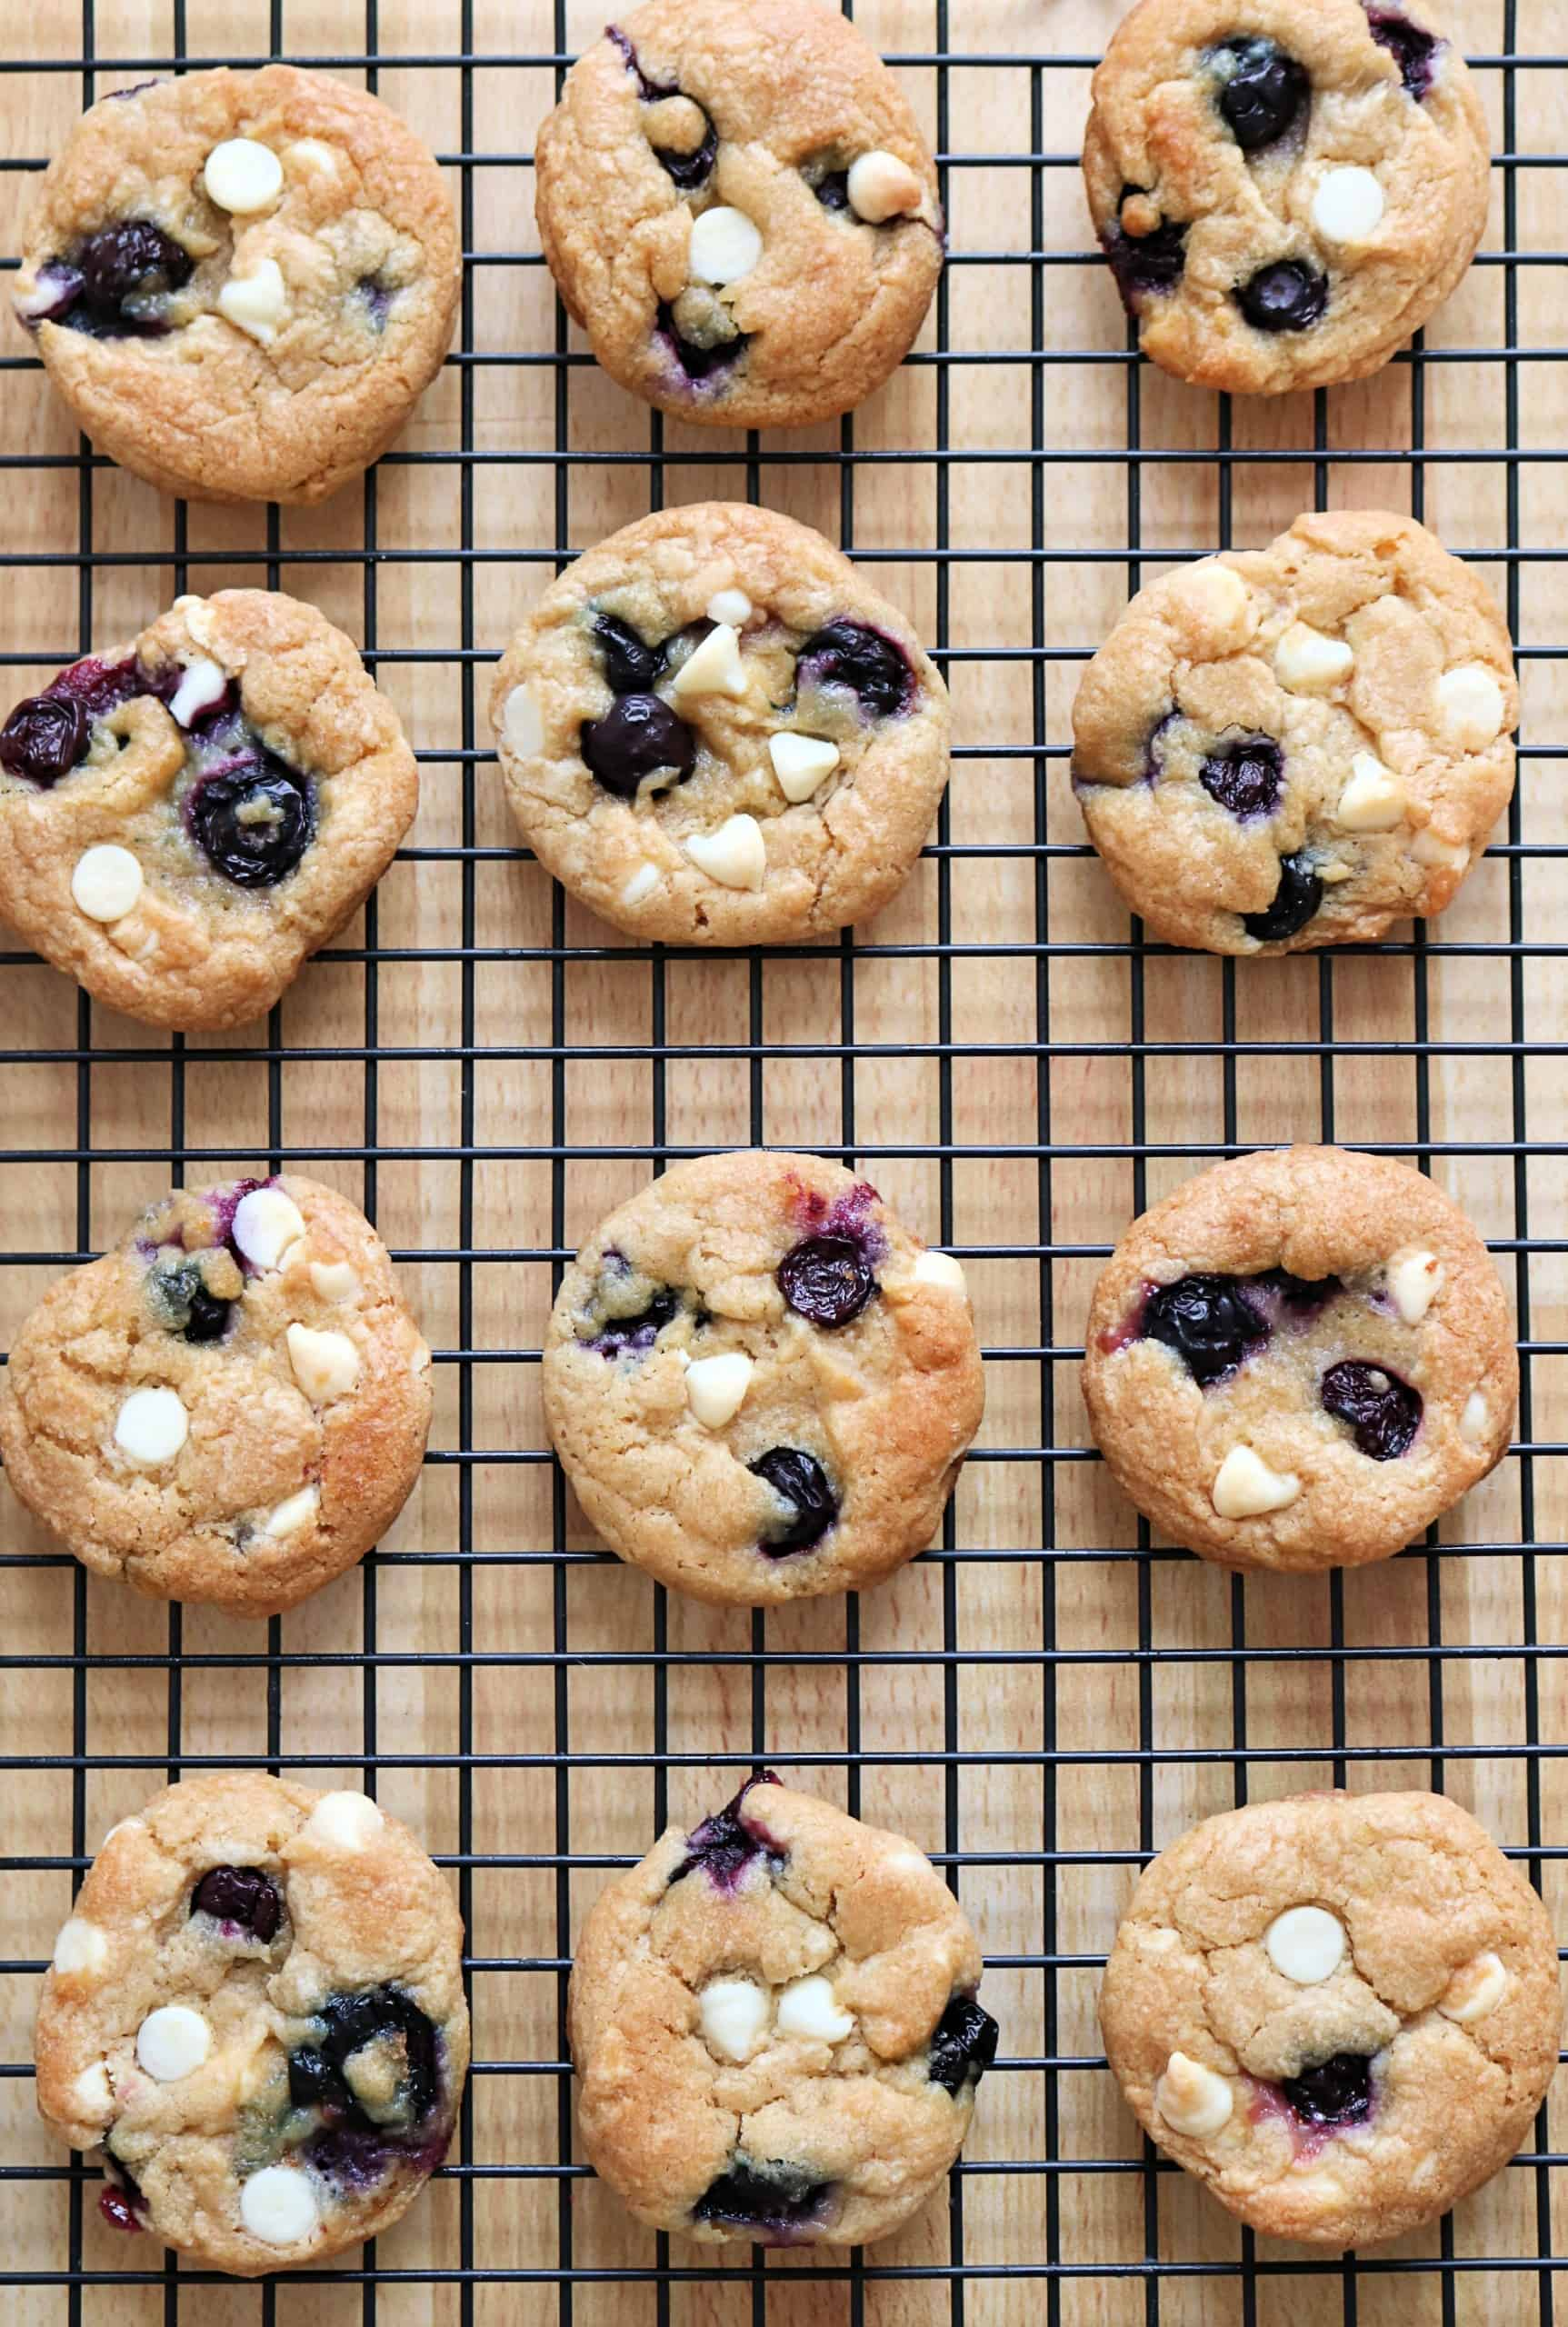 These easy, soft, and delicious Blueberry Cheesecake Cookies are officially the best homemade blueberry cookies ever! Made simple with fresh blueberries, white chocolate chips, cream cheese, brown sugar, and cheesecake pudding mix, they'll quickly become your new favorite cookie. #blueberrycookies #blueberrycheesecakecookies #cheesecakecookies #cookies #puddingmixcookies